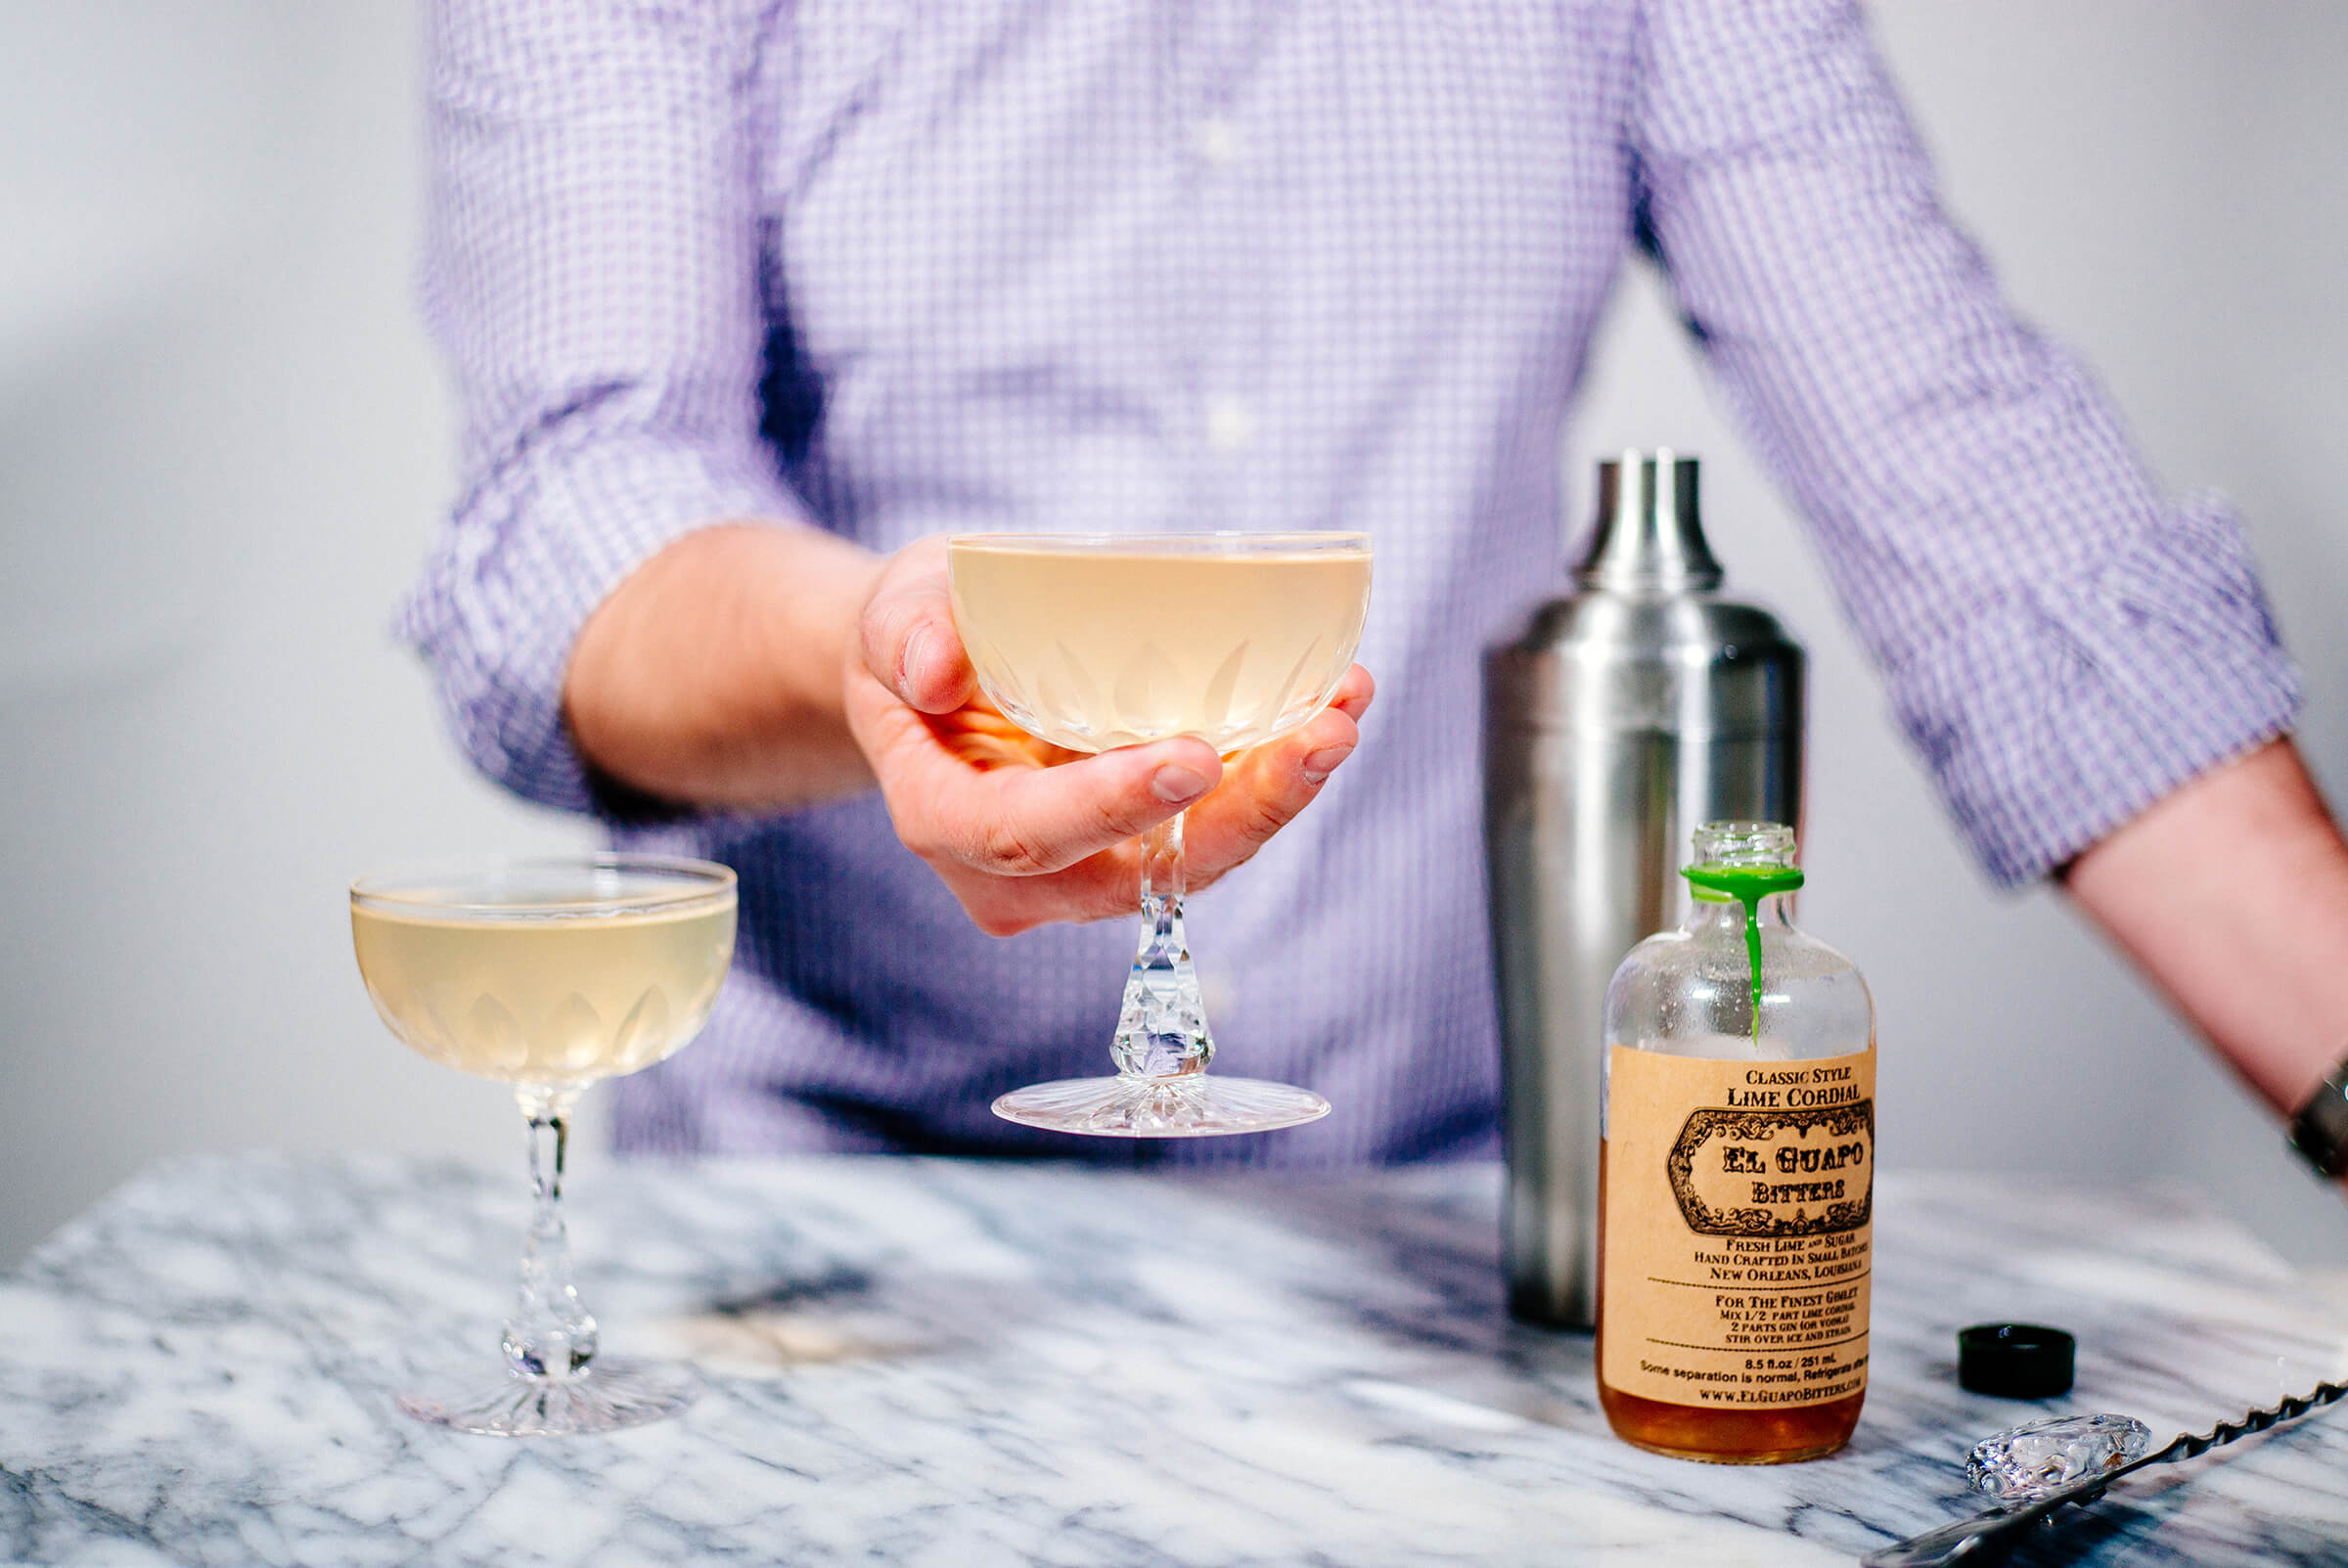 El Guapo Gimlet is simple and delicious made by The Taste Edit